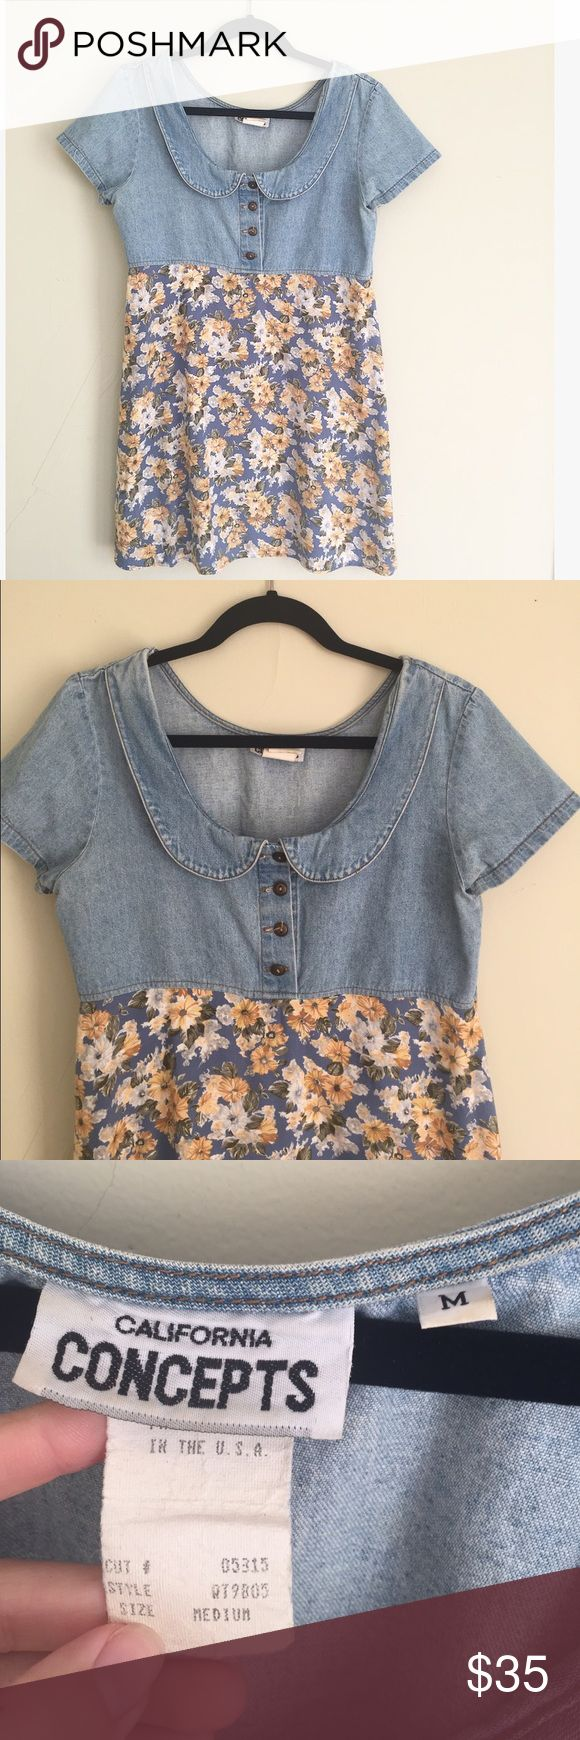 """Vintage Denim Floral Peter Pan Collar Dress This adorable vintage babydoll dress has a denim top with a Peter Pan collar and buttons. Cotton and rayon. 31.5"""" long, 18.5"""" pit to pit. No trades, offers welcome! Vintage Dresses"""